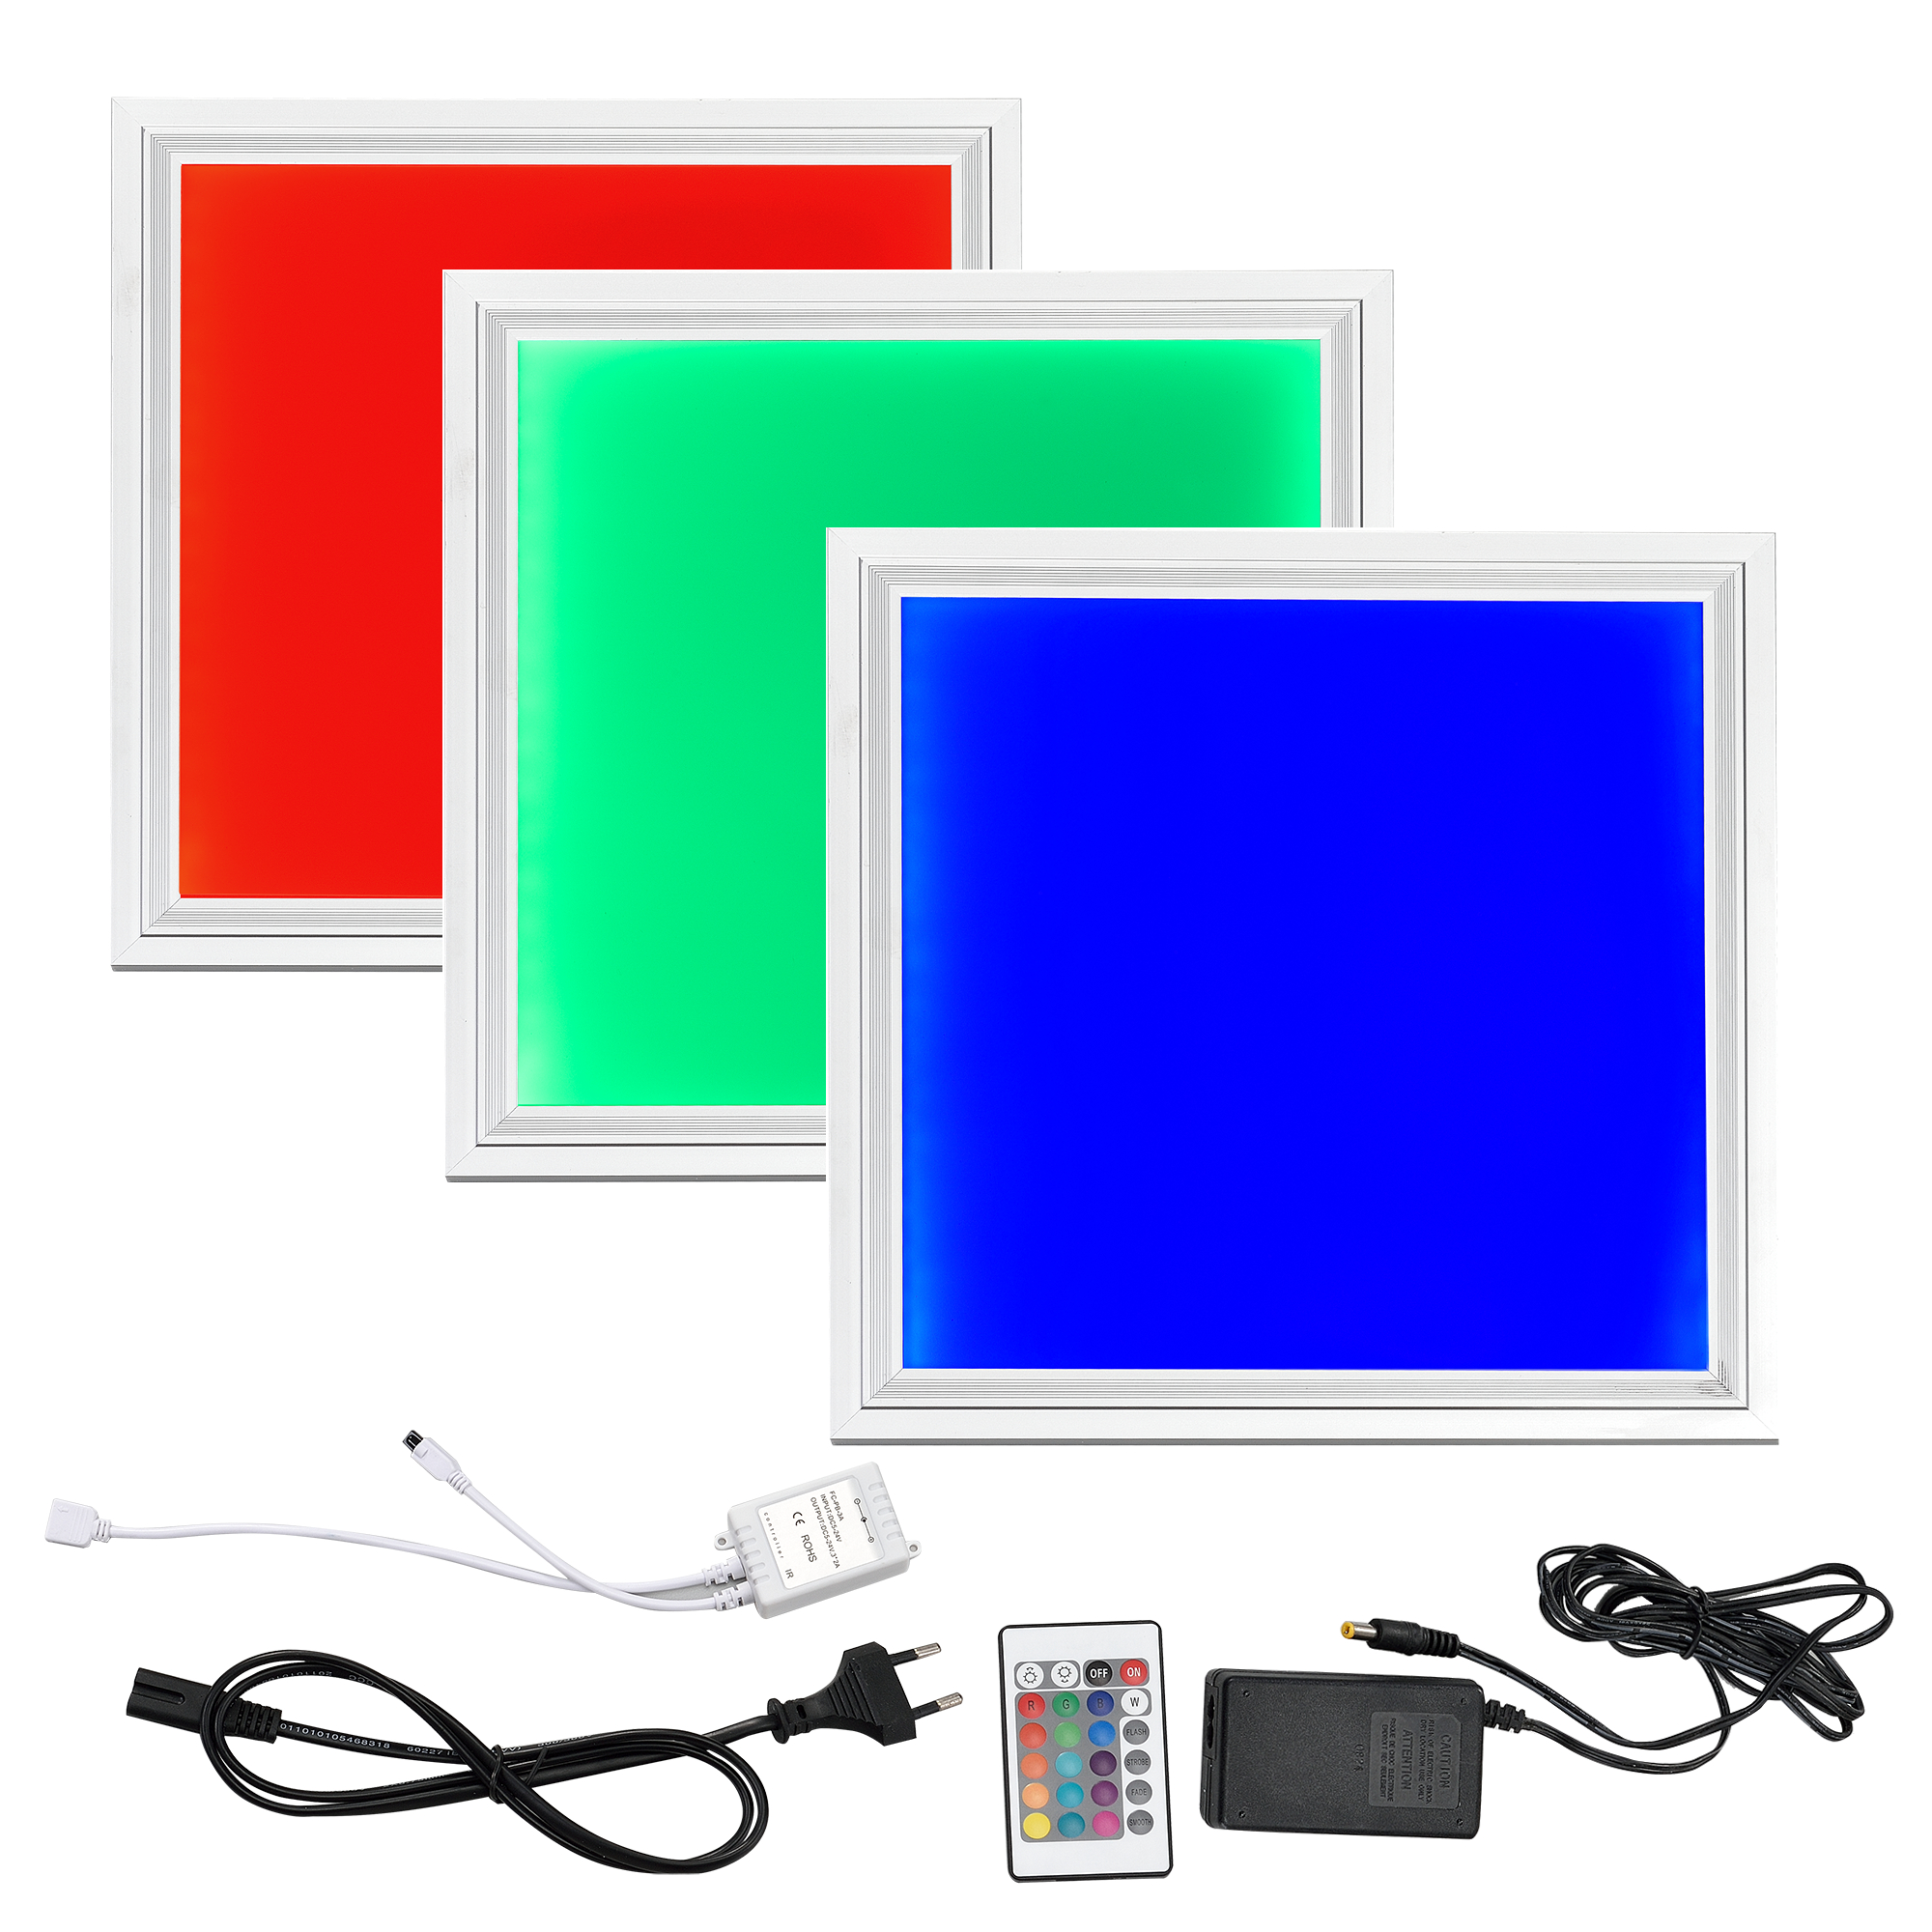 LED-Panel_HLD5501_vorschau Wunderbar Led Panel Rgb Dimmbar Dekorationen